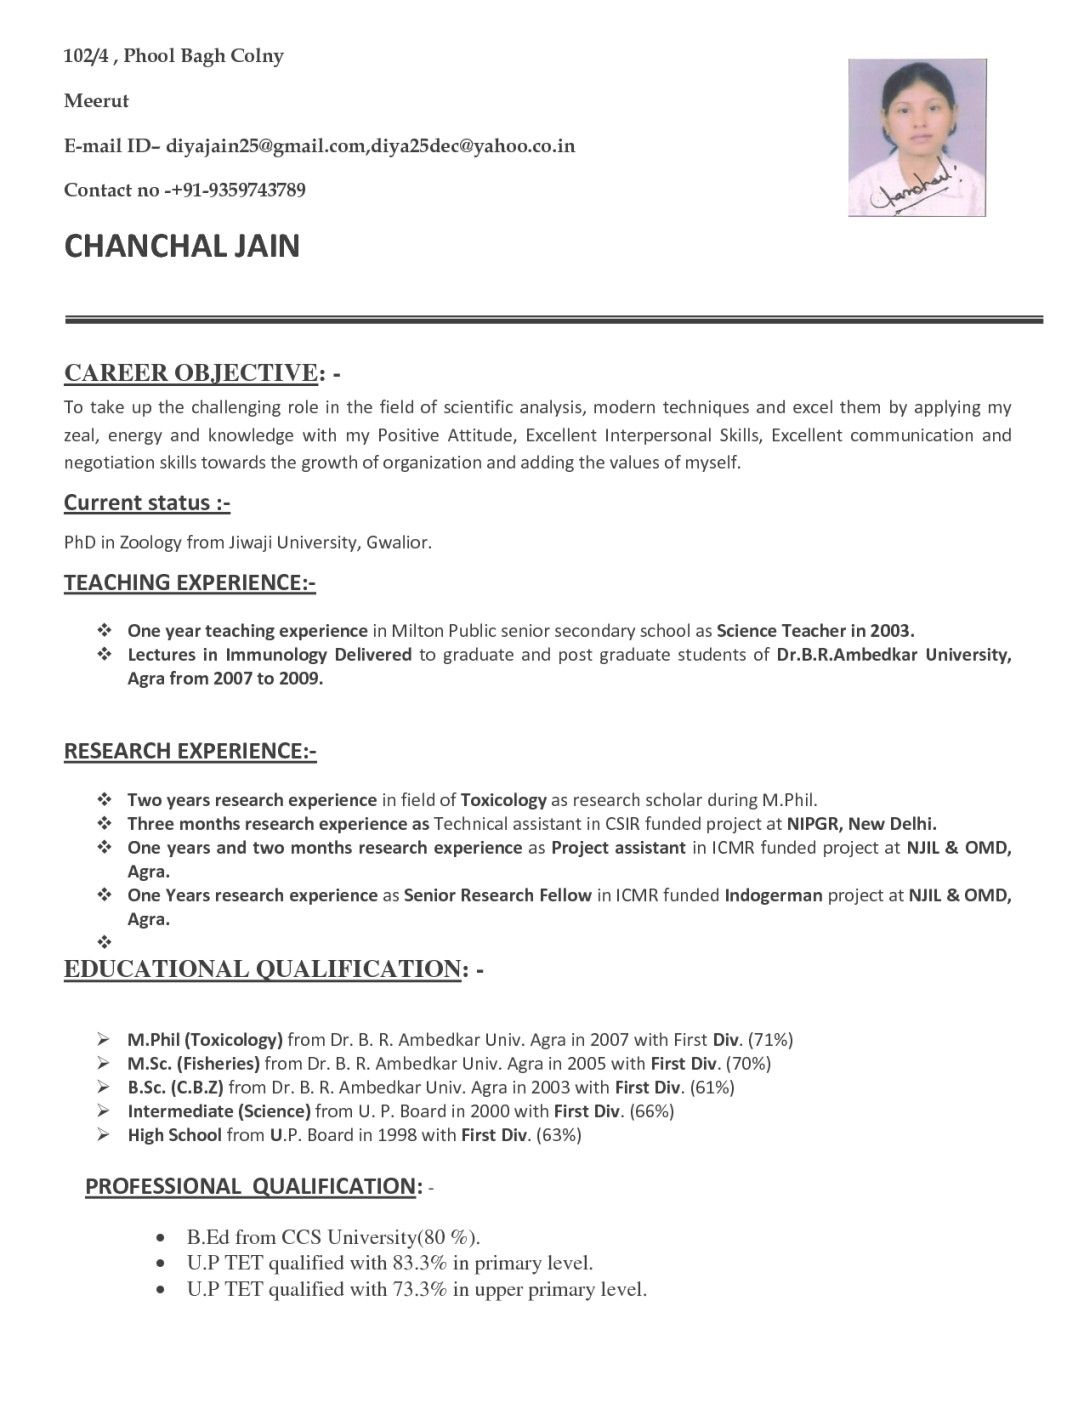 Curriculum Vitae Examples For Freshers